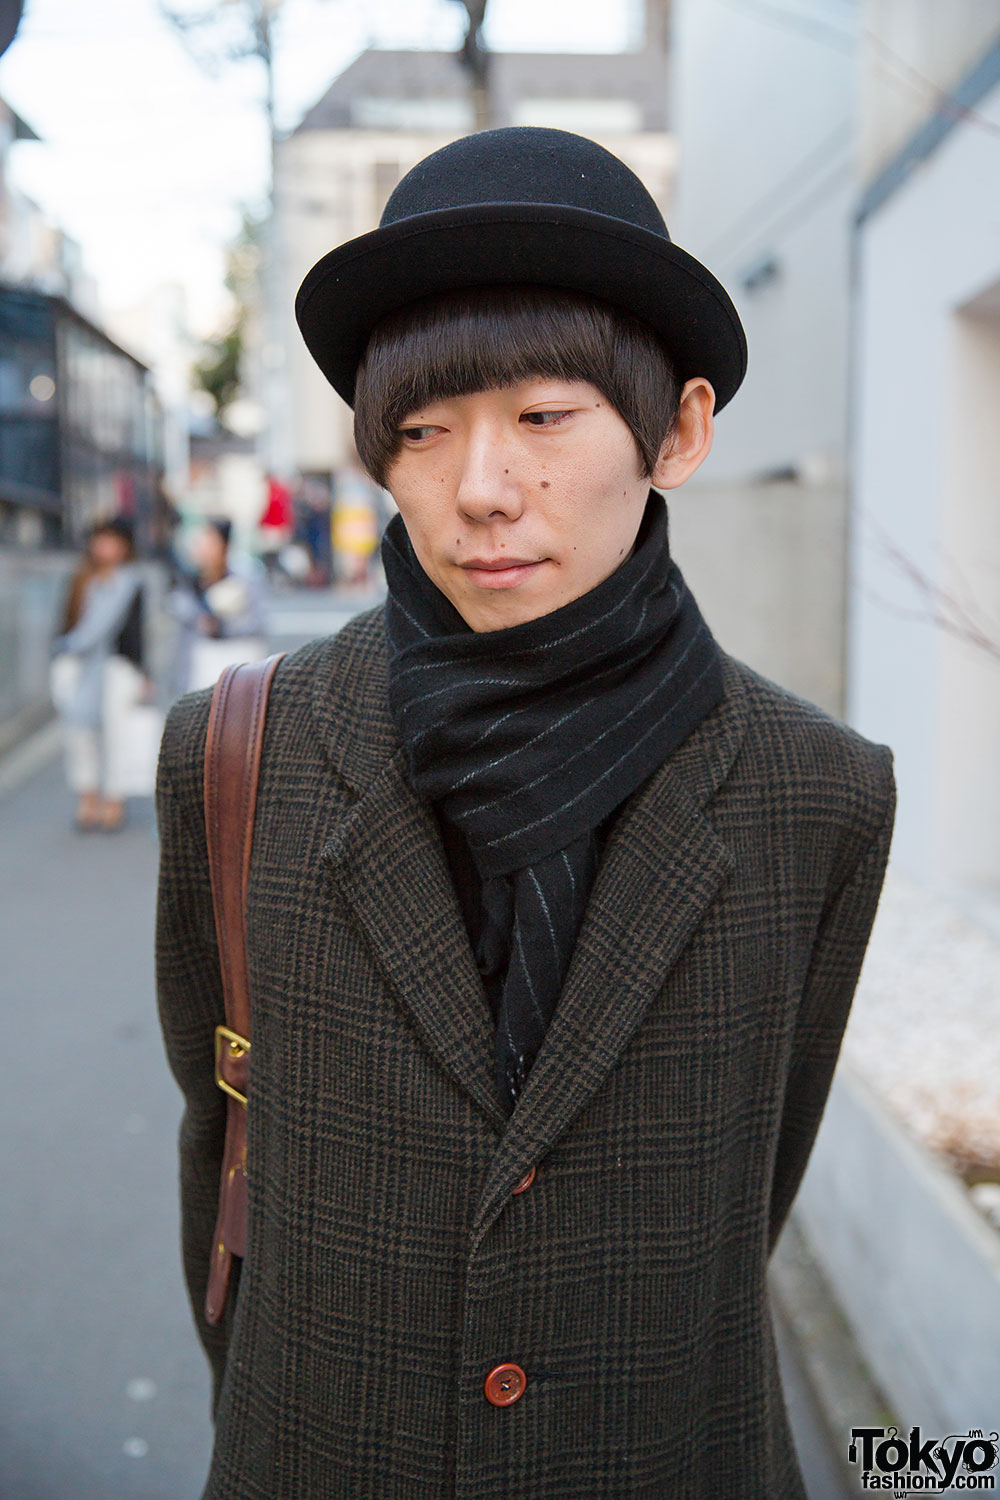 Harajuku Duo in Hats & Midi Coats w/ Christopher Nemeth & Comme des Garcons